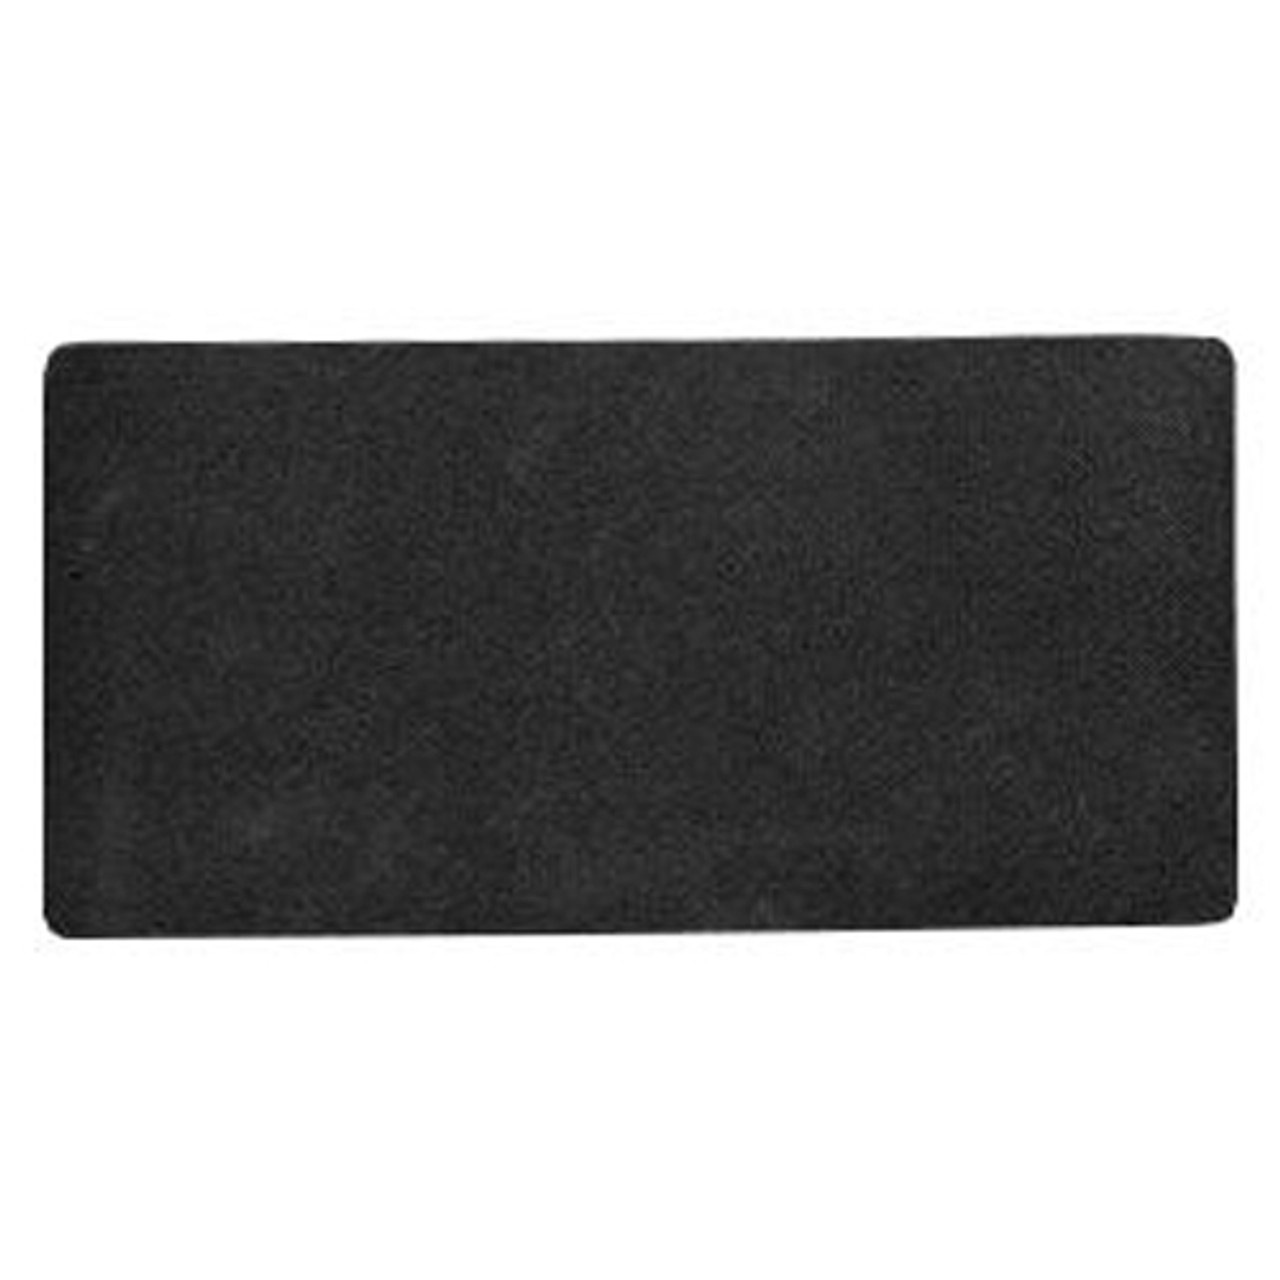 No-Slip Rubber Pads, Large